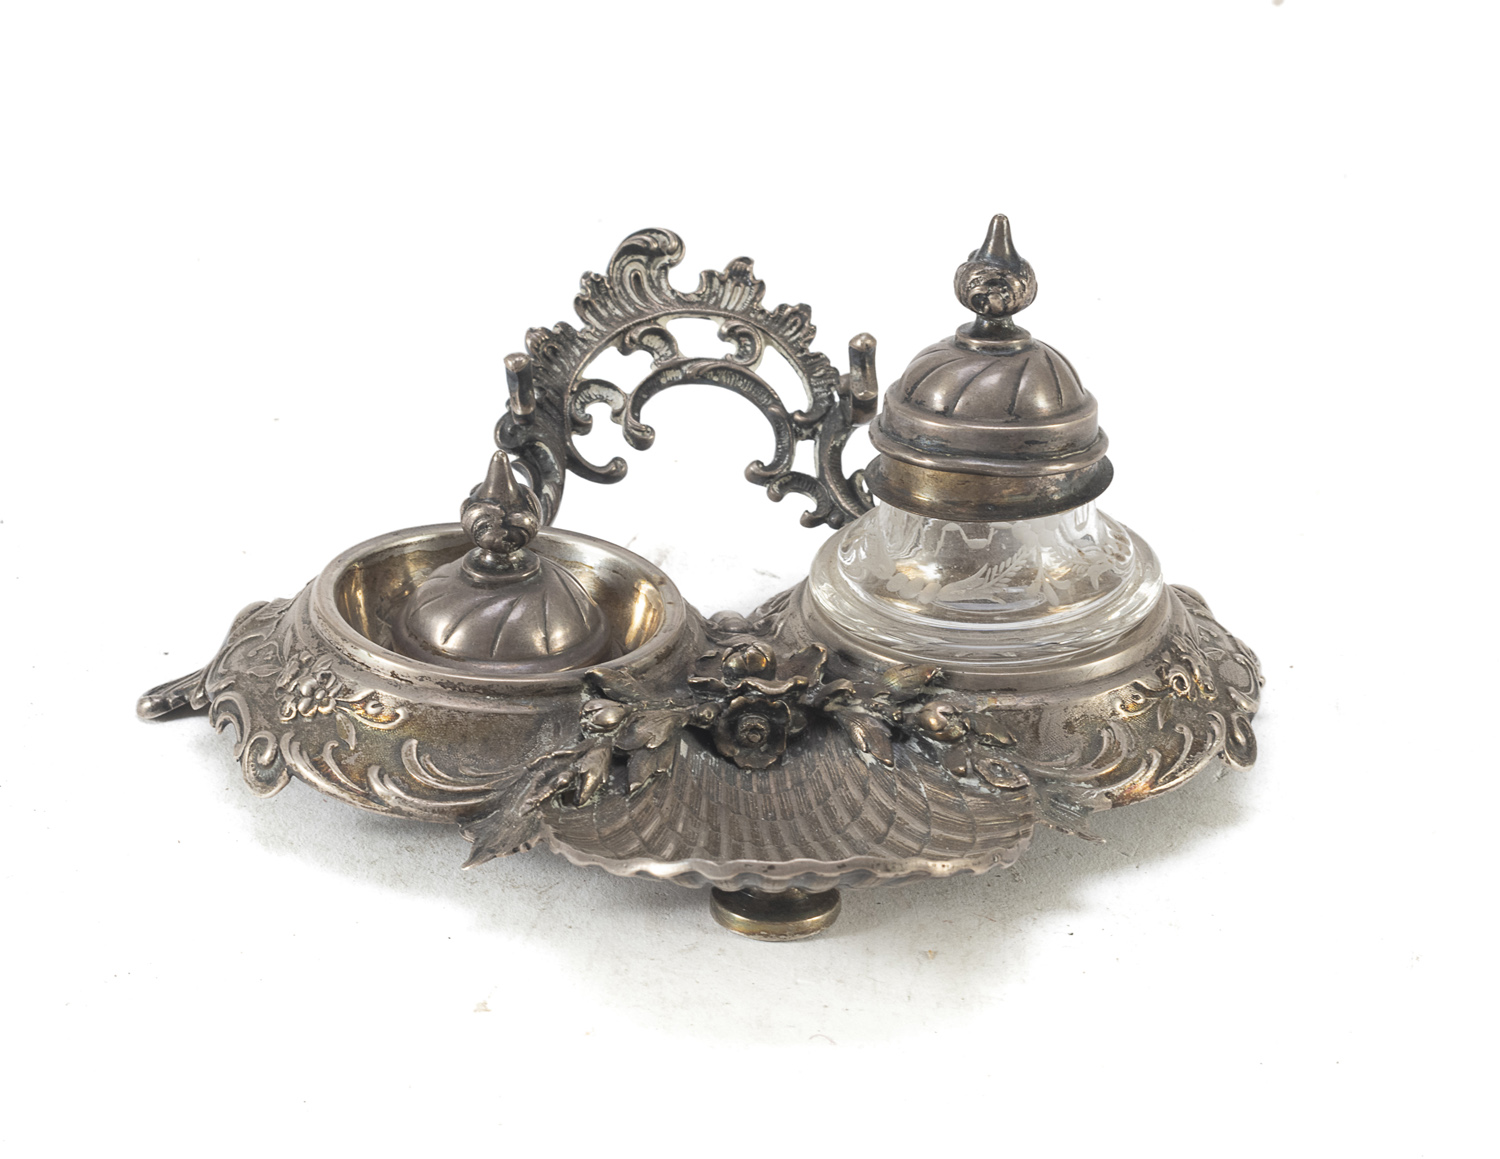 SMALL SILVER-PLATED INKWELL EARLY 20TH CENTURY